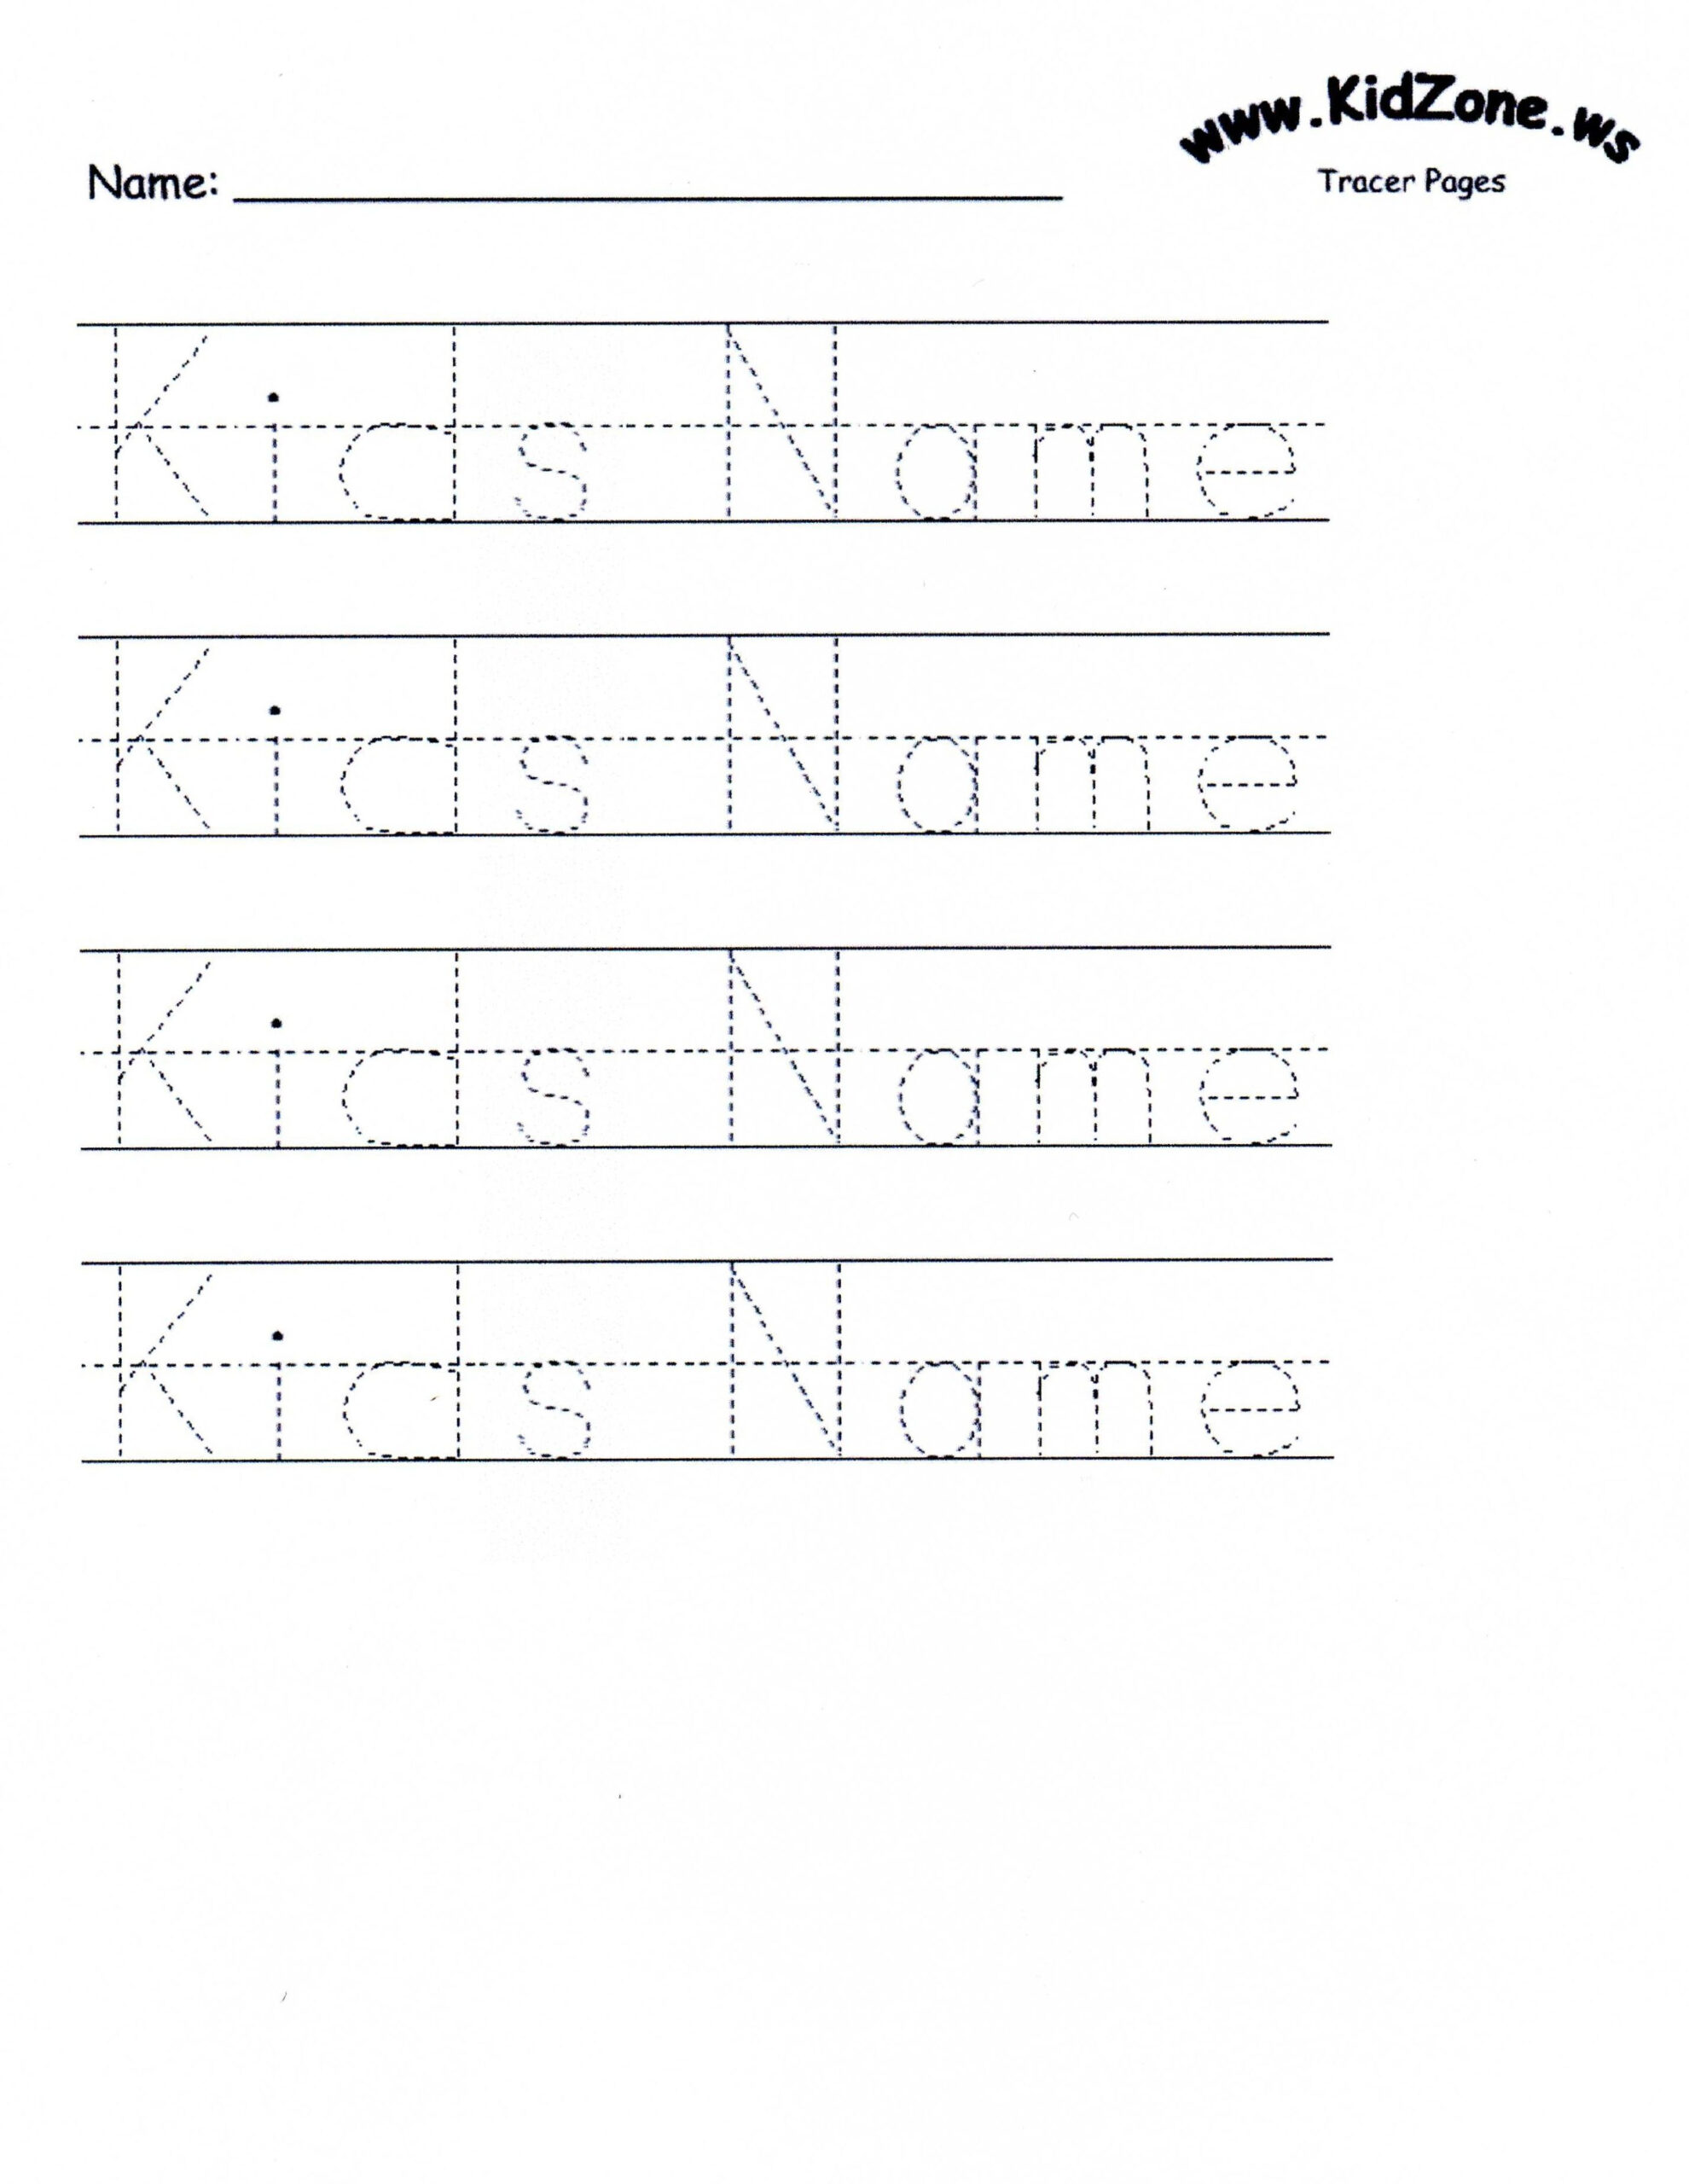 Name Tracing Worksheets For Printable. Name Tracing in Name Tracing Document